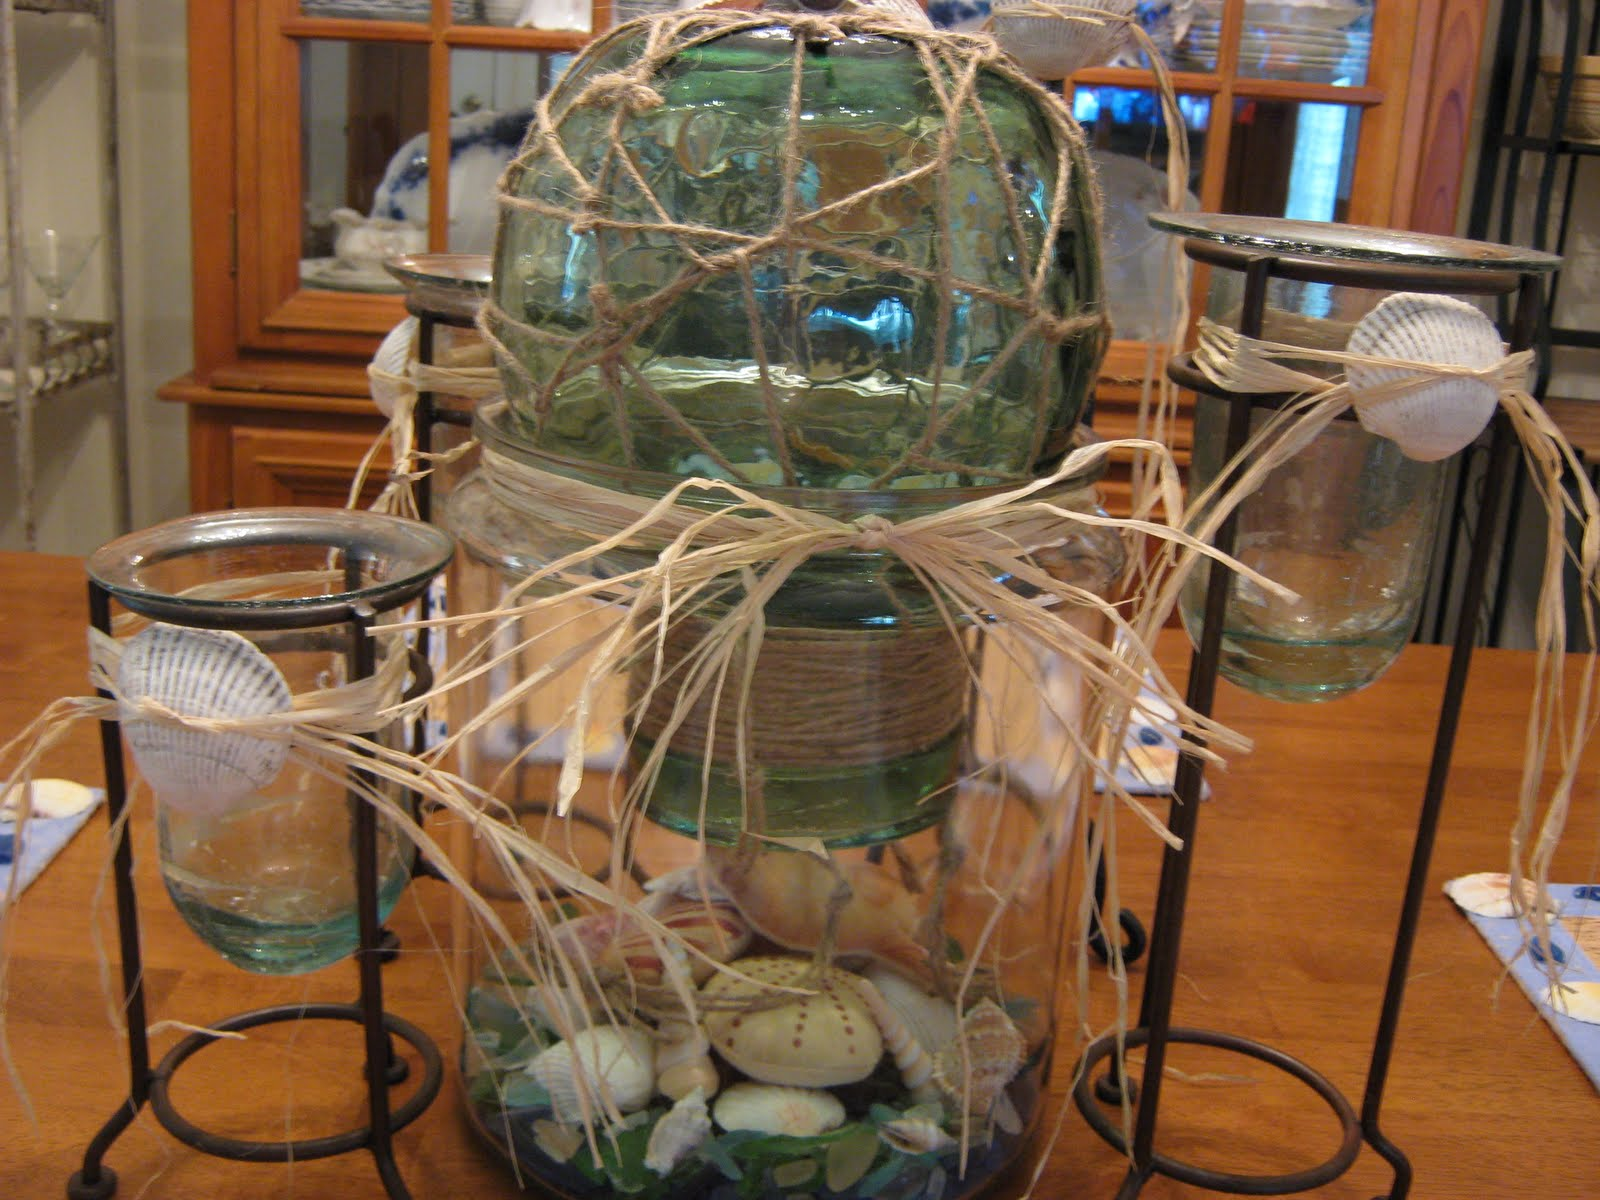 Fake it frugal nautical centerpiece with quot faked glass